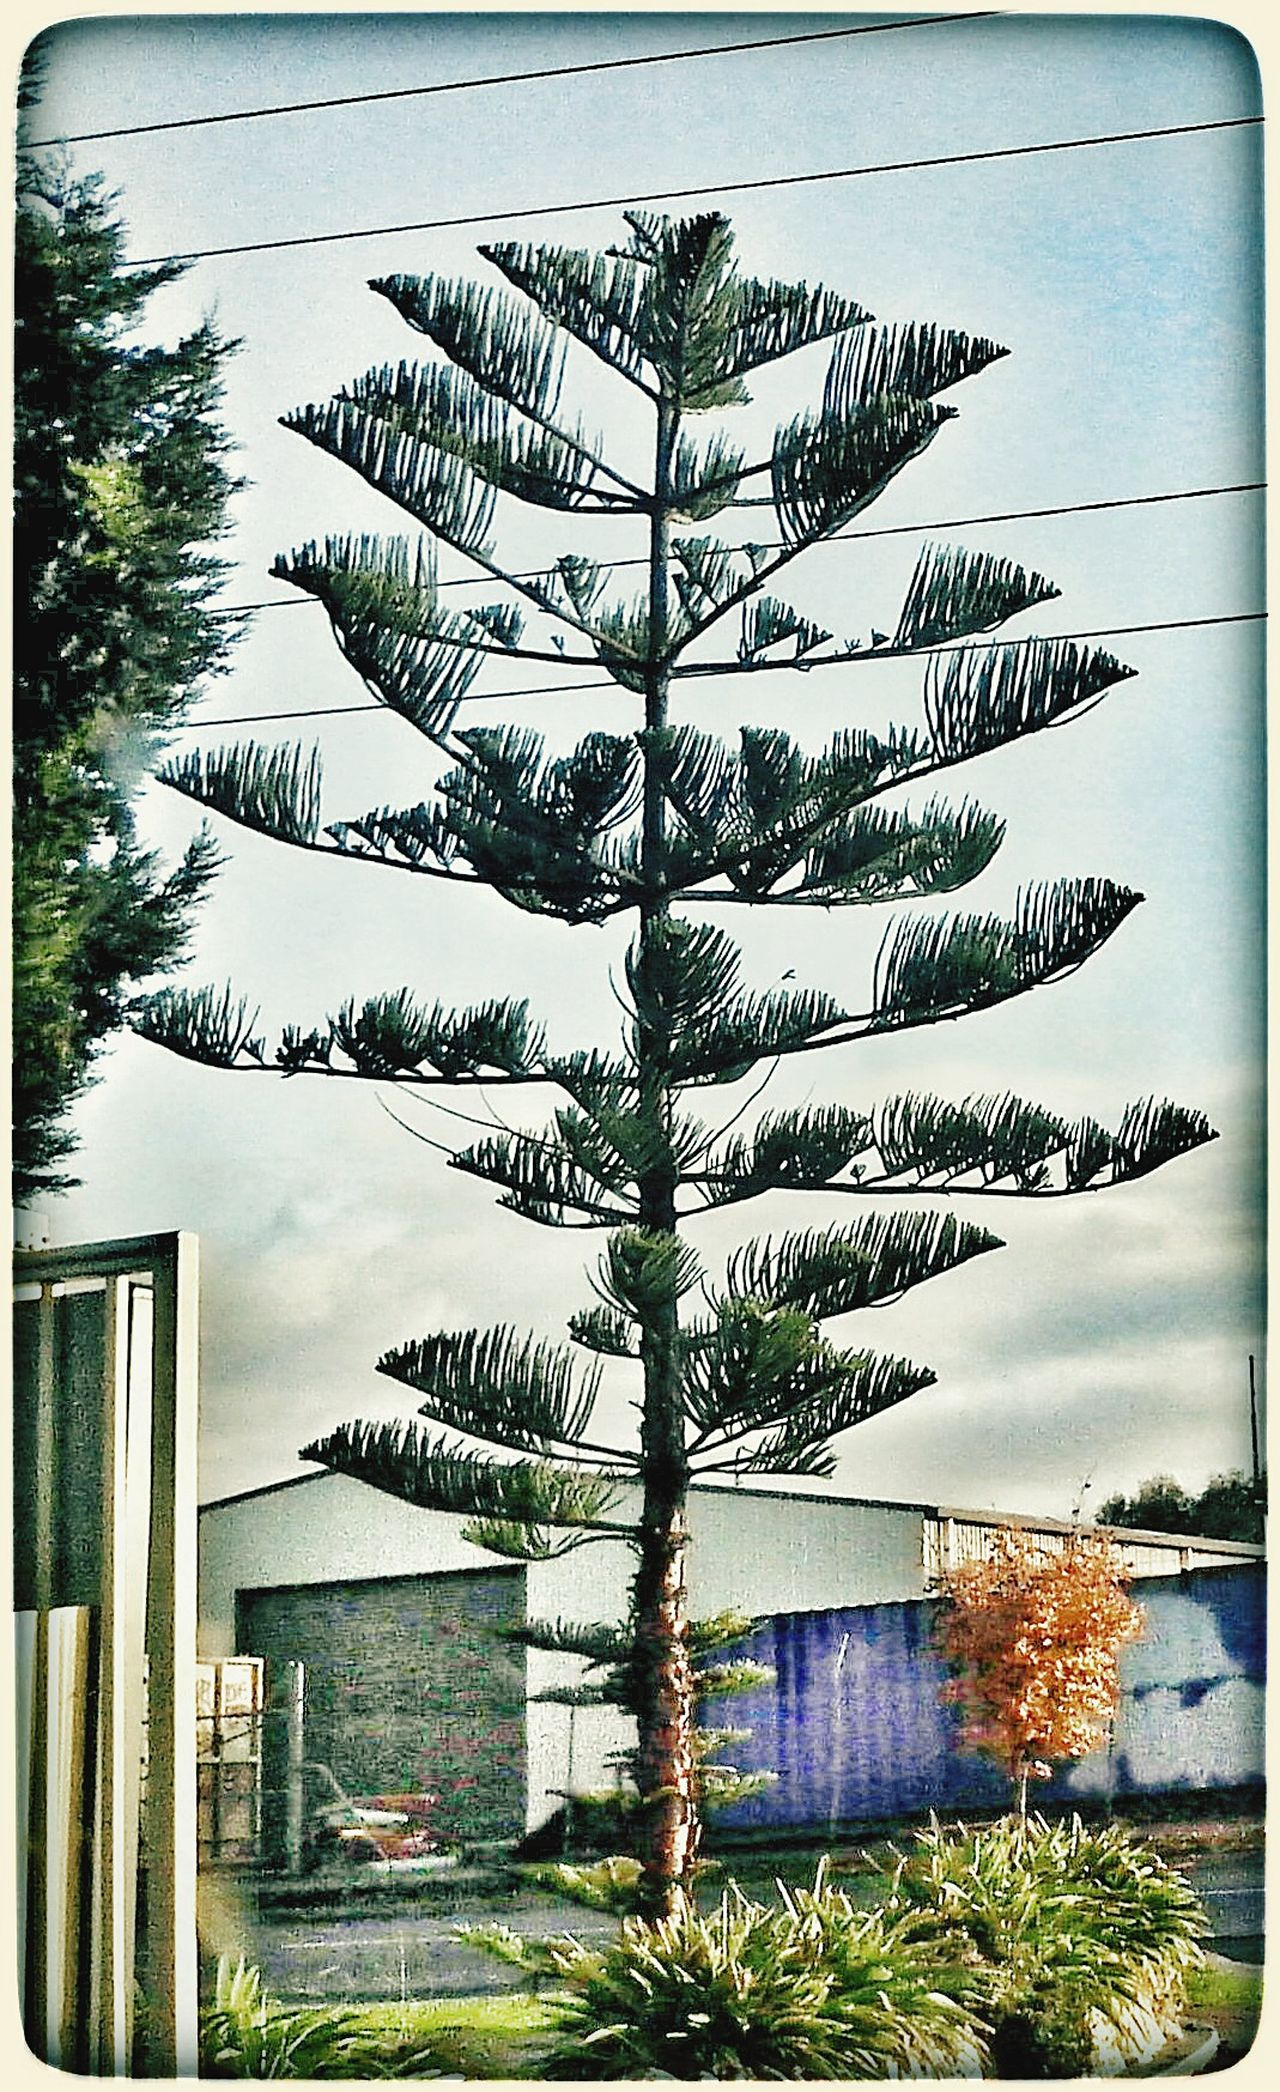 I think this type of evergreen is just really cool and strange. Tree